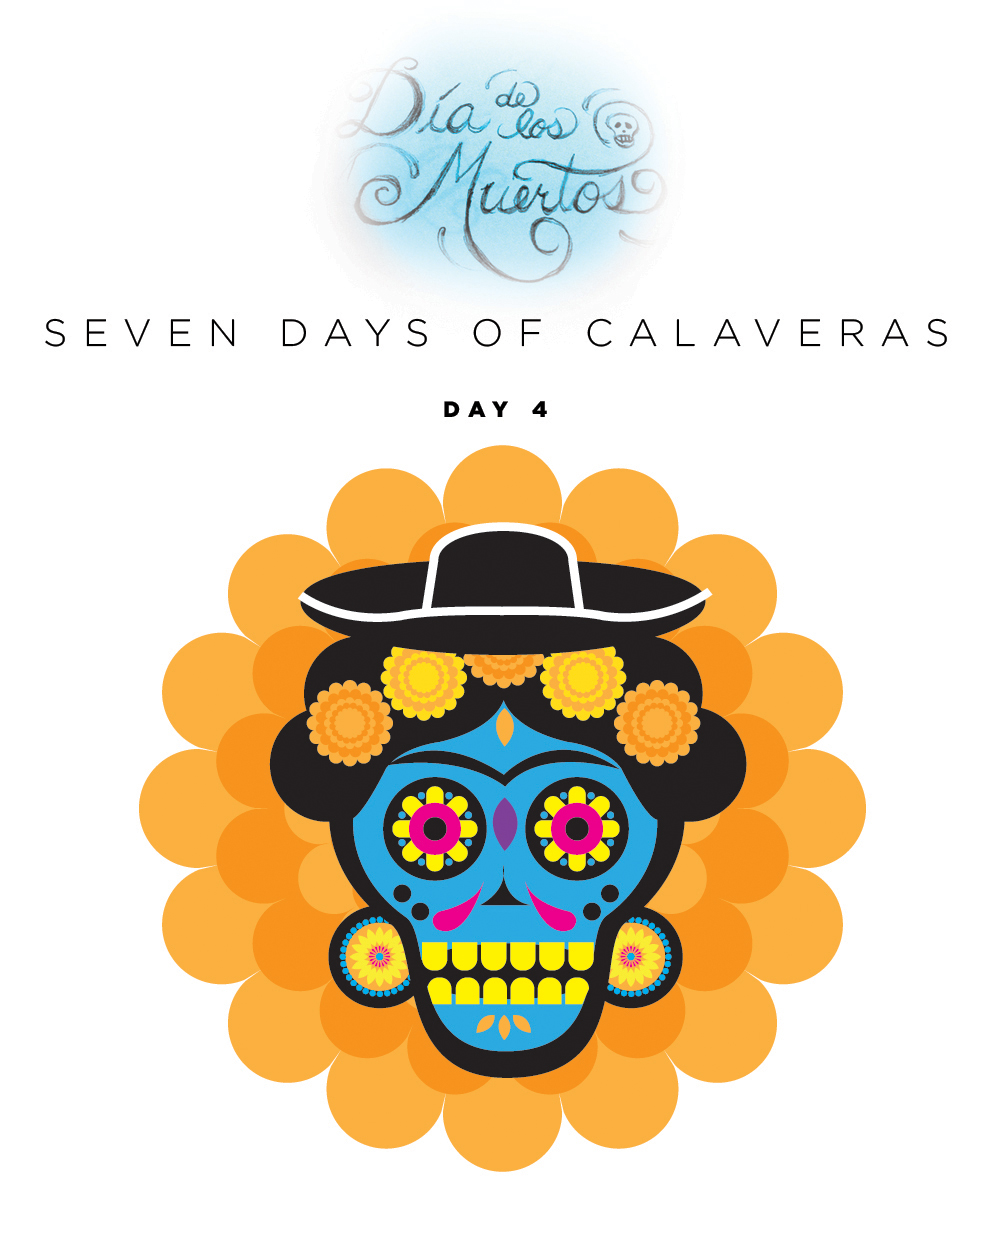 SEVEN days of calaveras day 4